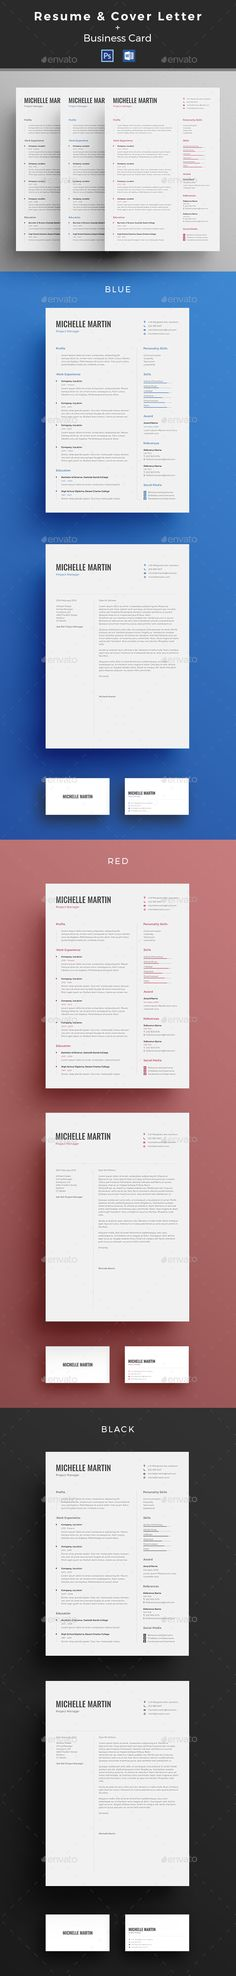 Resume | CV — PSD Template #2 page #docx • Download ➝ https://graphicriver.net/item/resume-cv/18079167?ref=pxcr